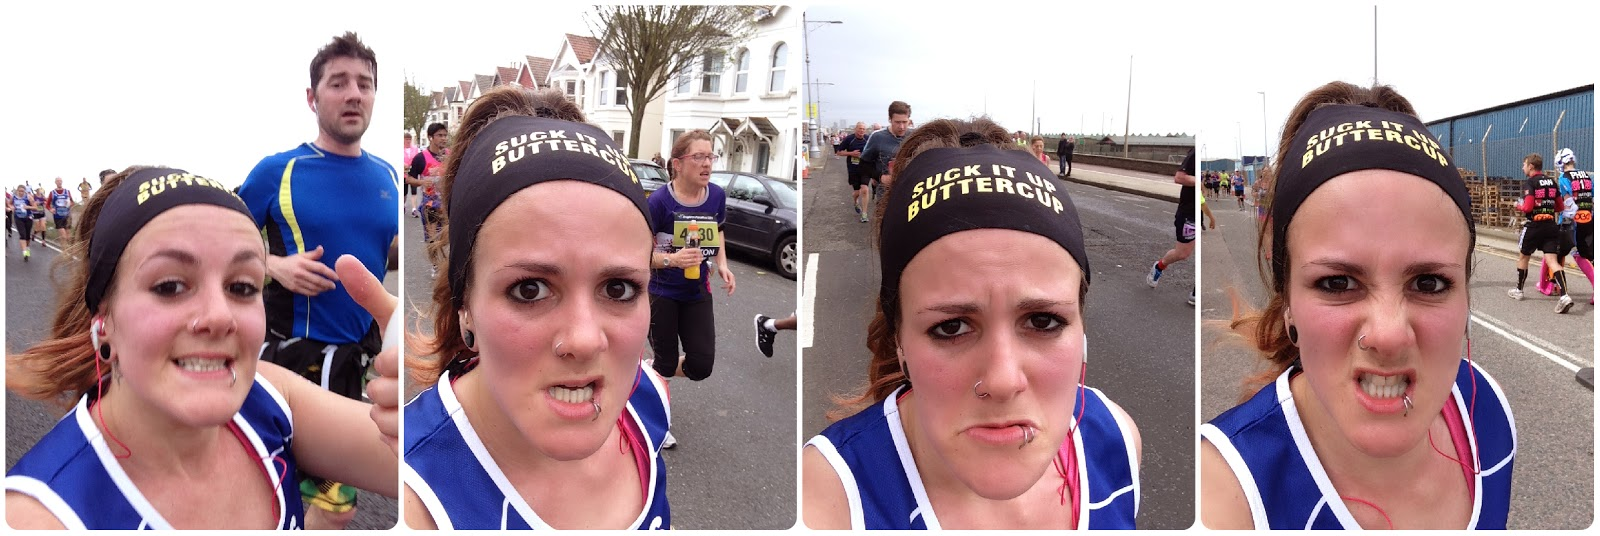 Brighton Marathon 2014 in selfies